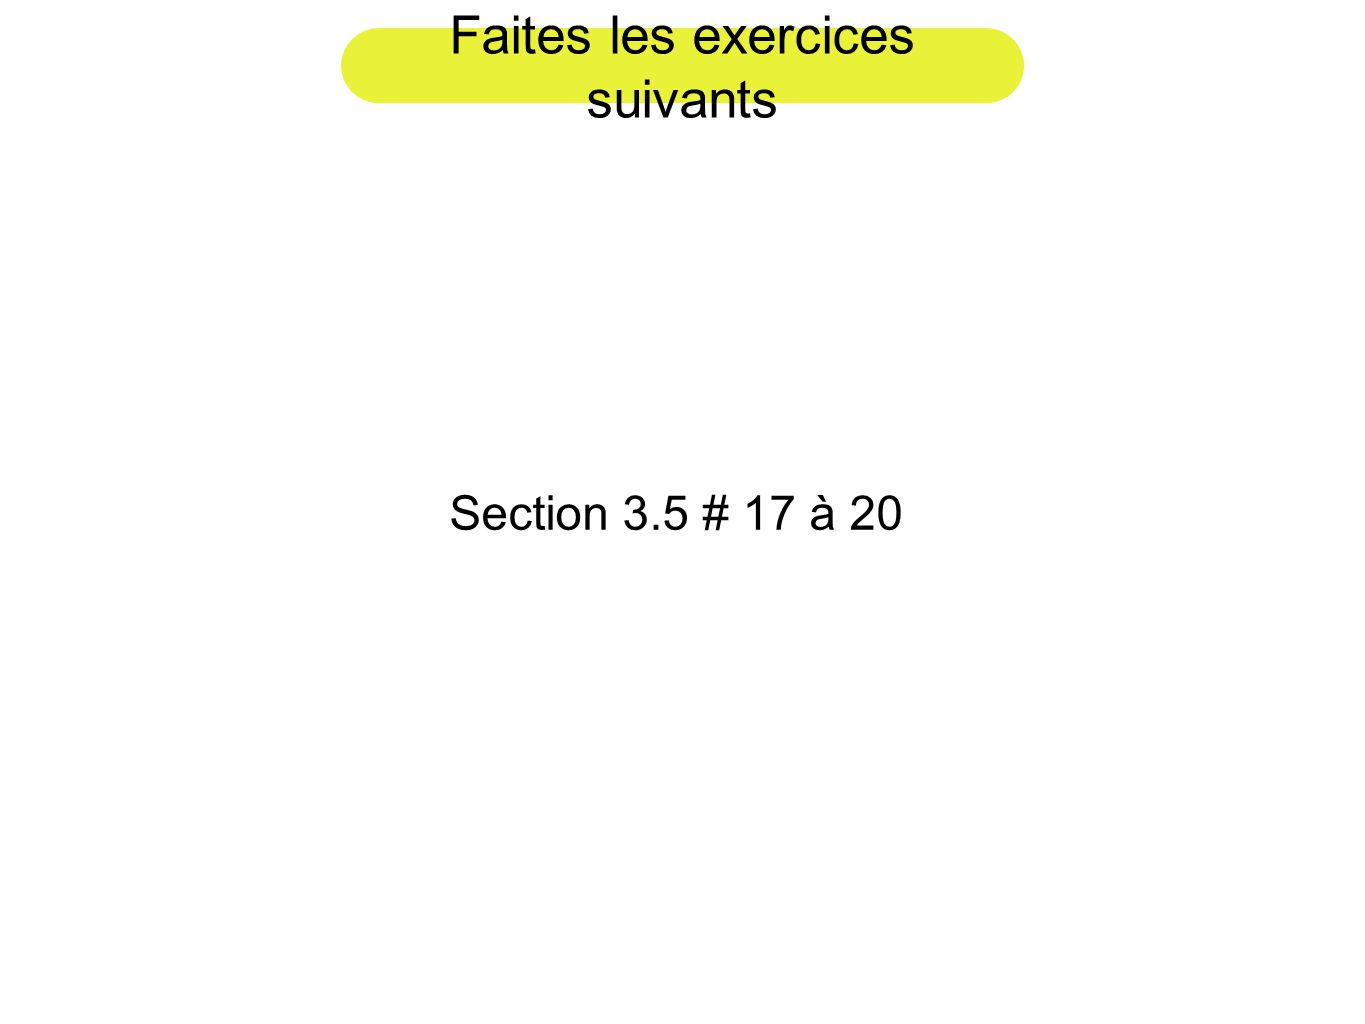 Faites les exercices suivants Section 3.5 # 17 à 20